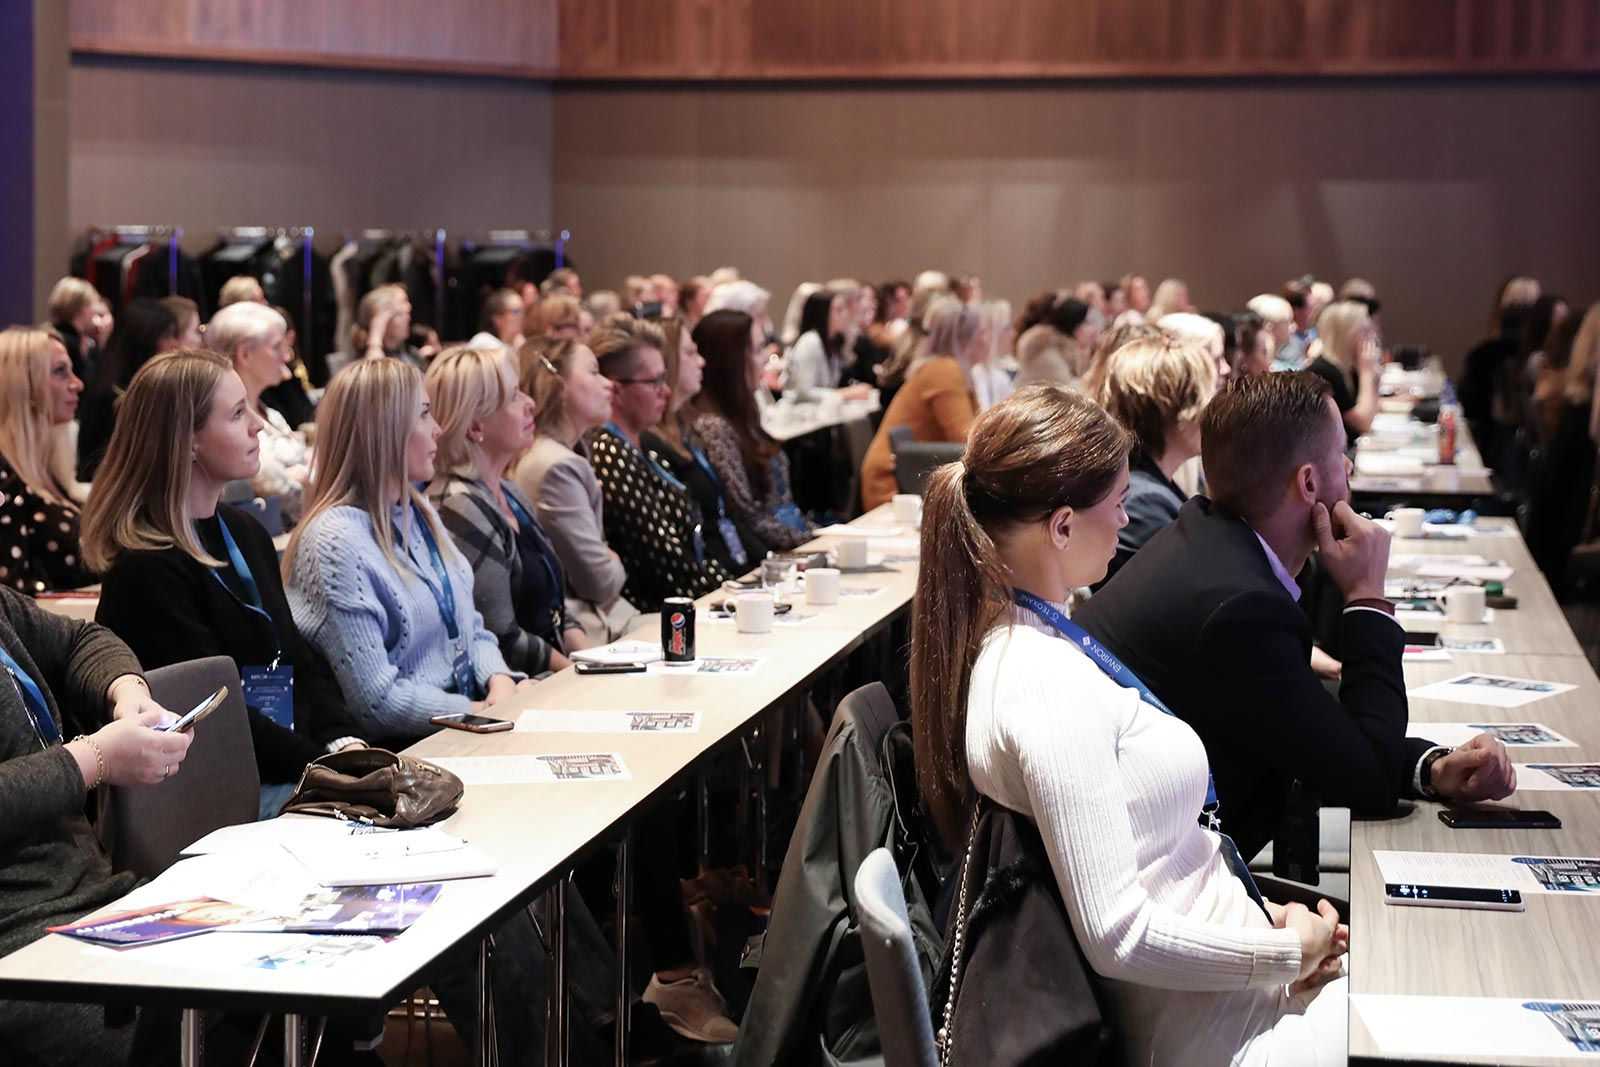 Senzie Conference 2019 - Crowd listening to speaker